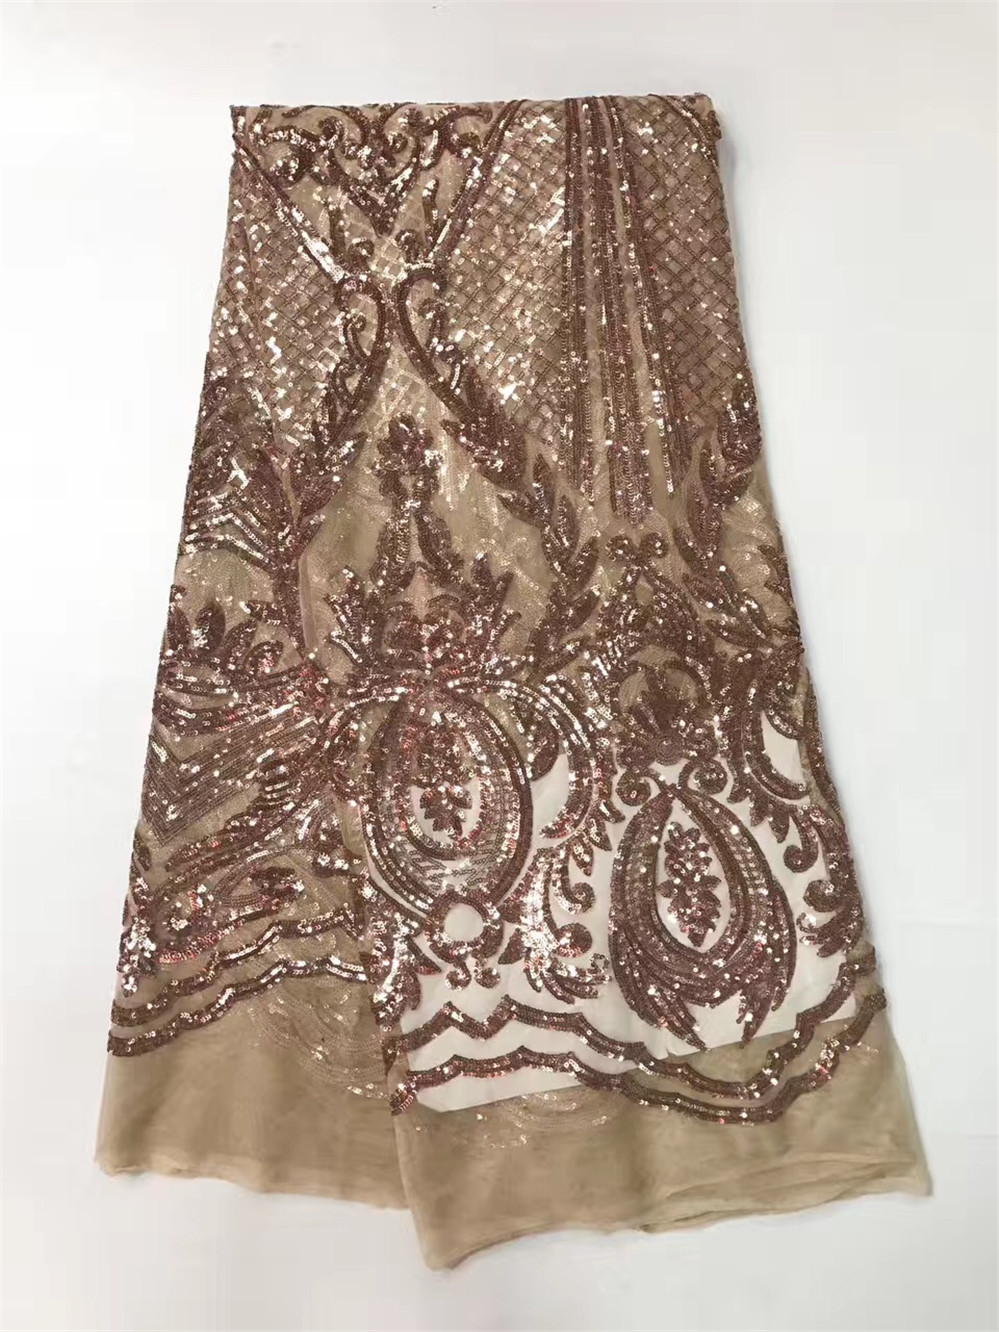 French Lace Fabric High Class African Laces Fabric champagne gold With Sequins Embroidery For Sewing Beauty Women Dress